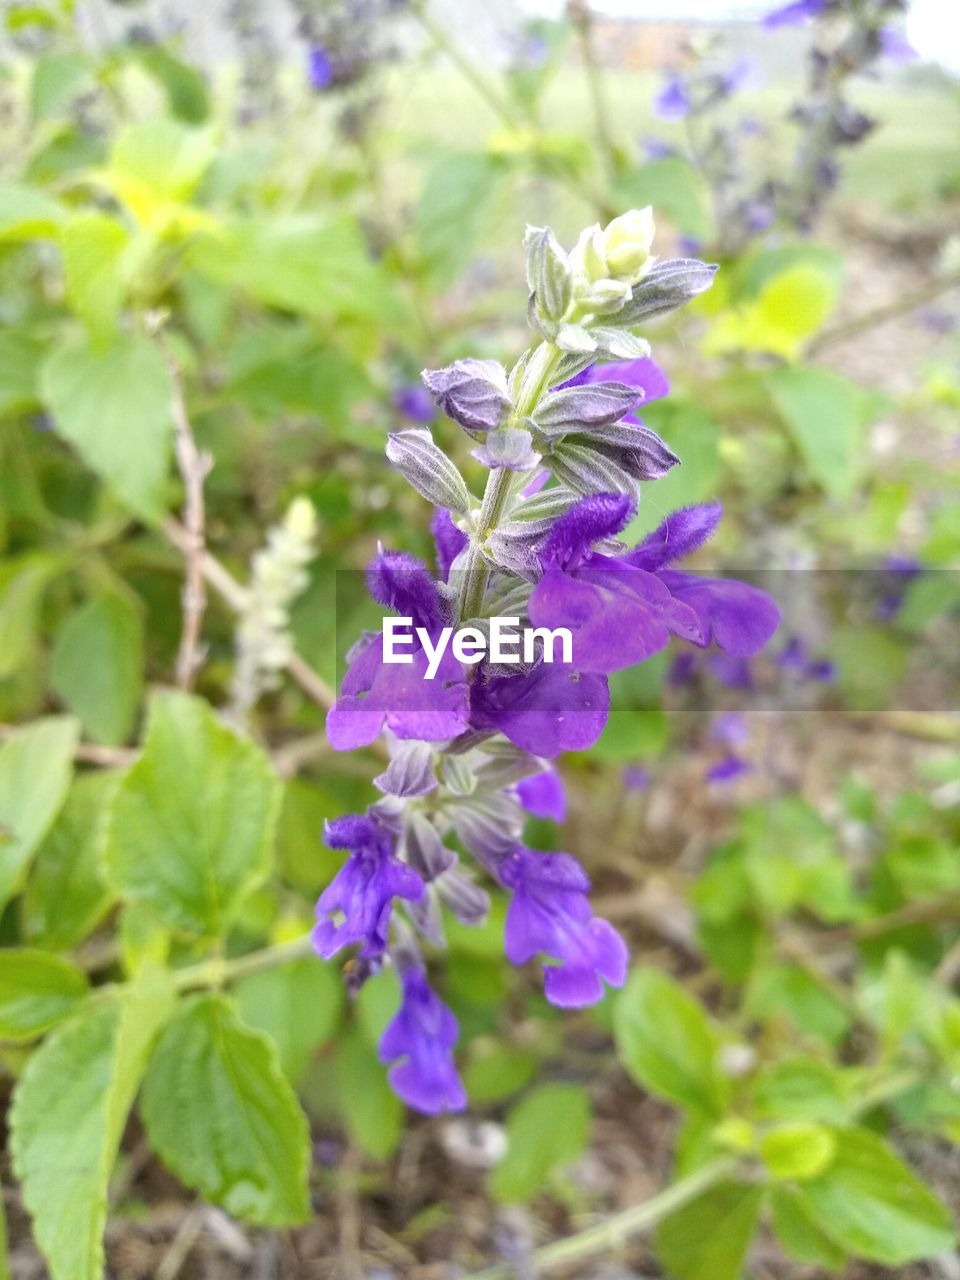 flower, flowering plant, plant, freshness, vulnerability, fragility, beauty in nature, growth, purple, close-up, petal, nature, day, flower head, inflorescence, focus on foreground, no people, outdoors, botany, leaf